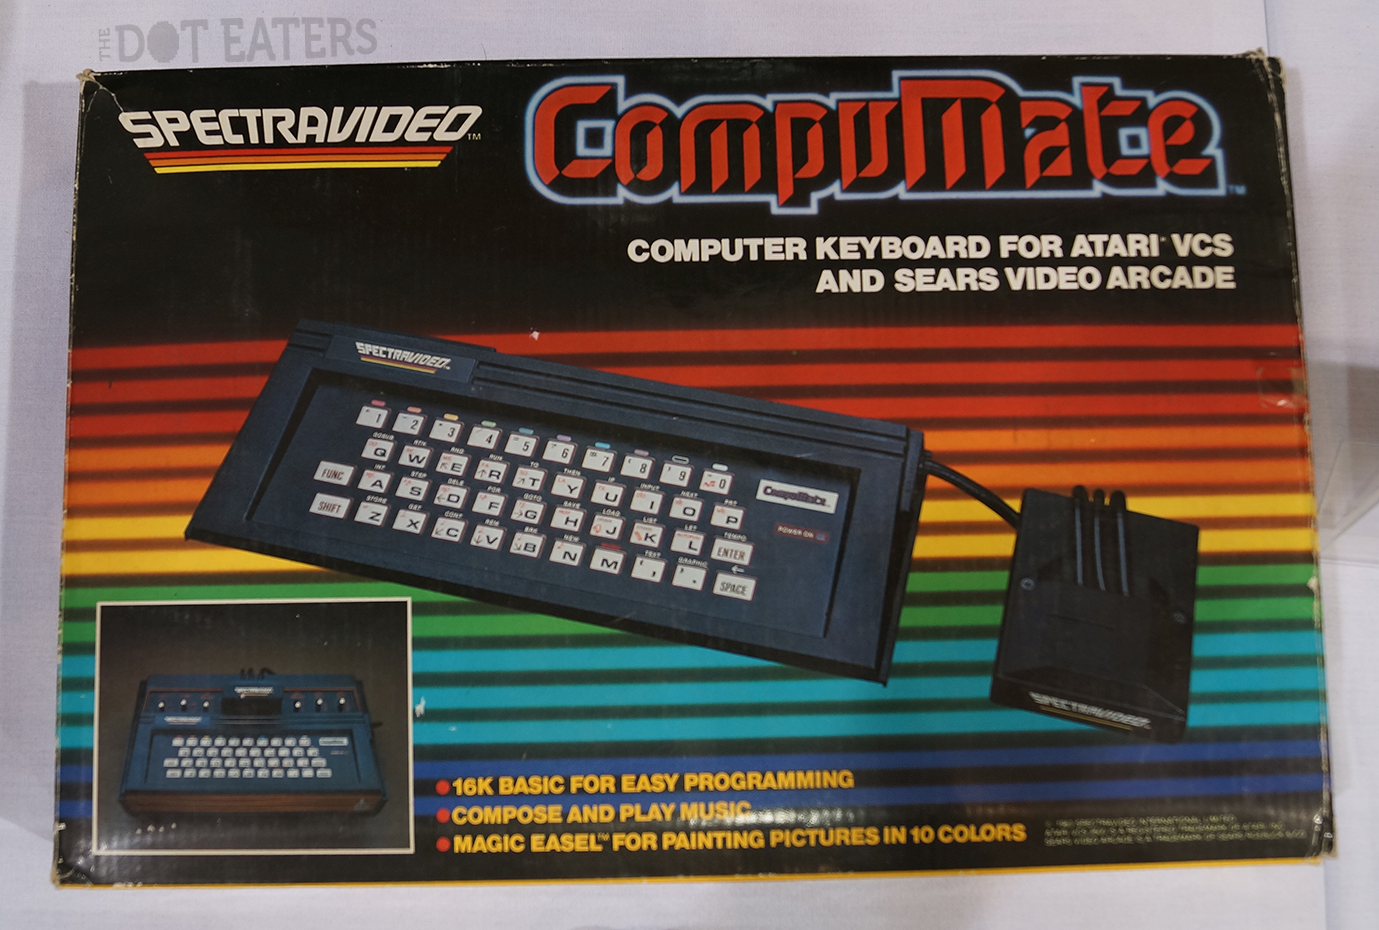 Box for CompuMate, a keyboard/computer add-on for the Atari 2600 home video game system, 1983